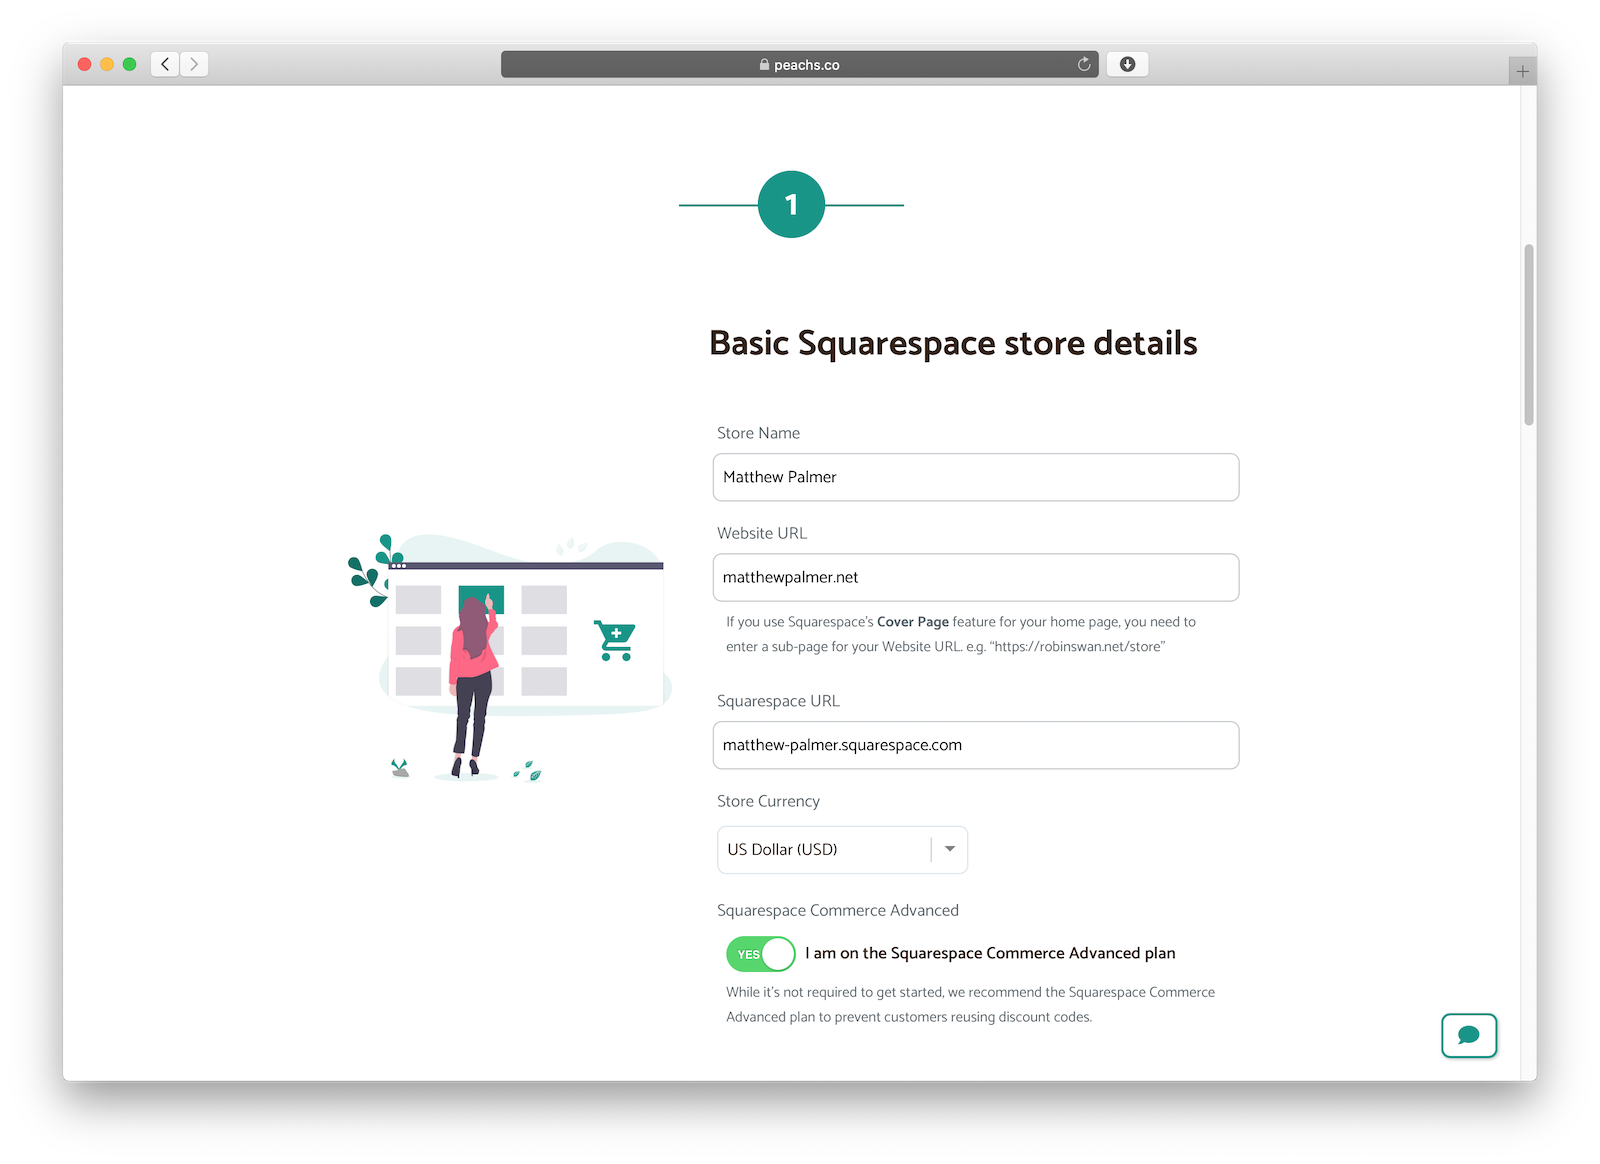 Squarespace referrals